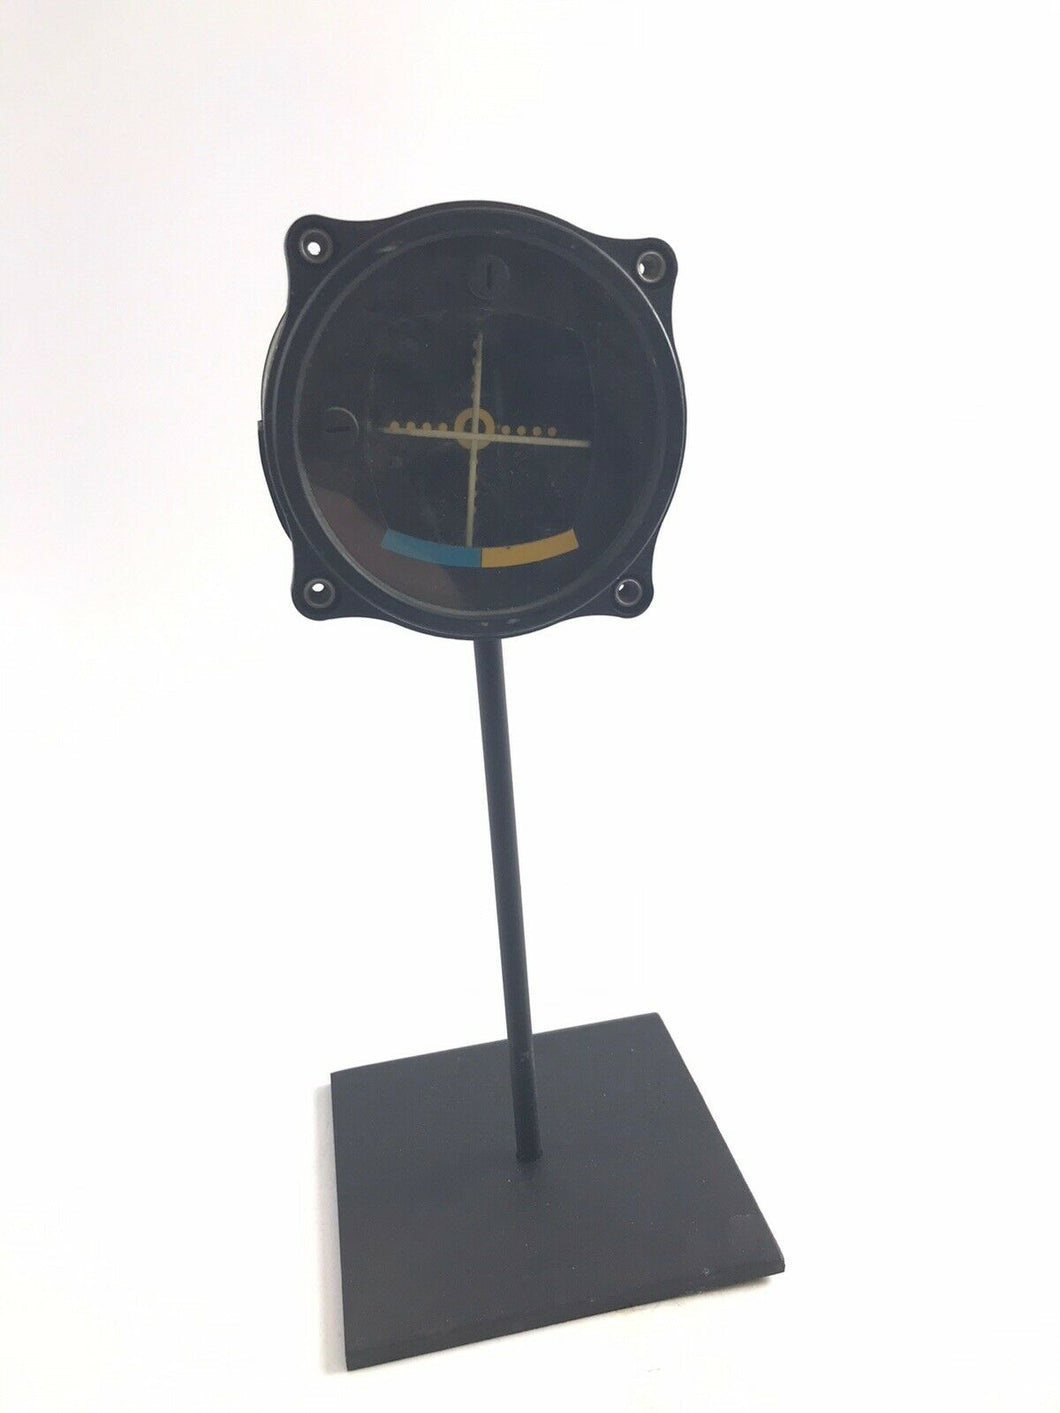 US Army Helicopter Course ID Indicator Gauge - 1-101 C -5353